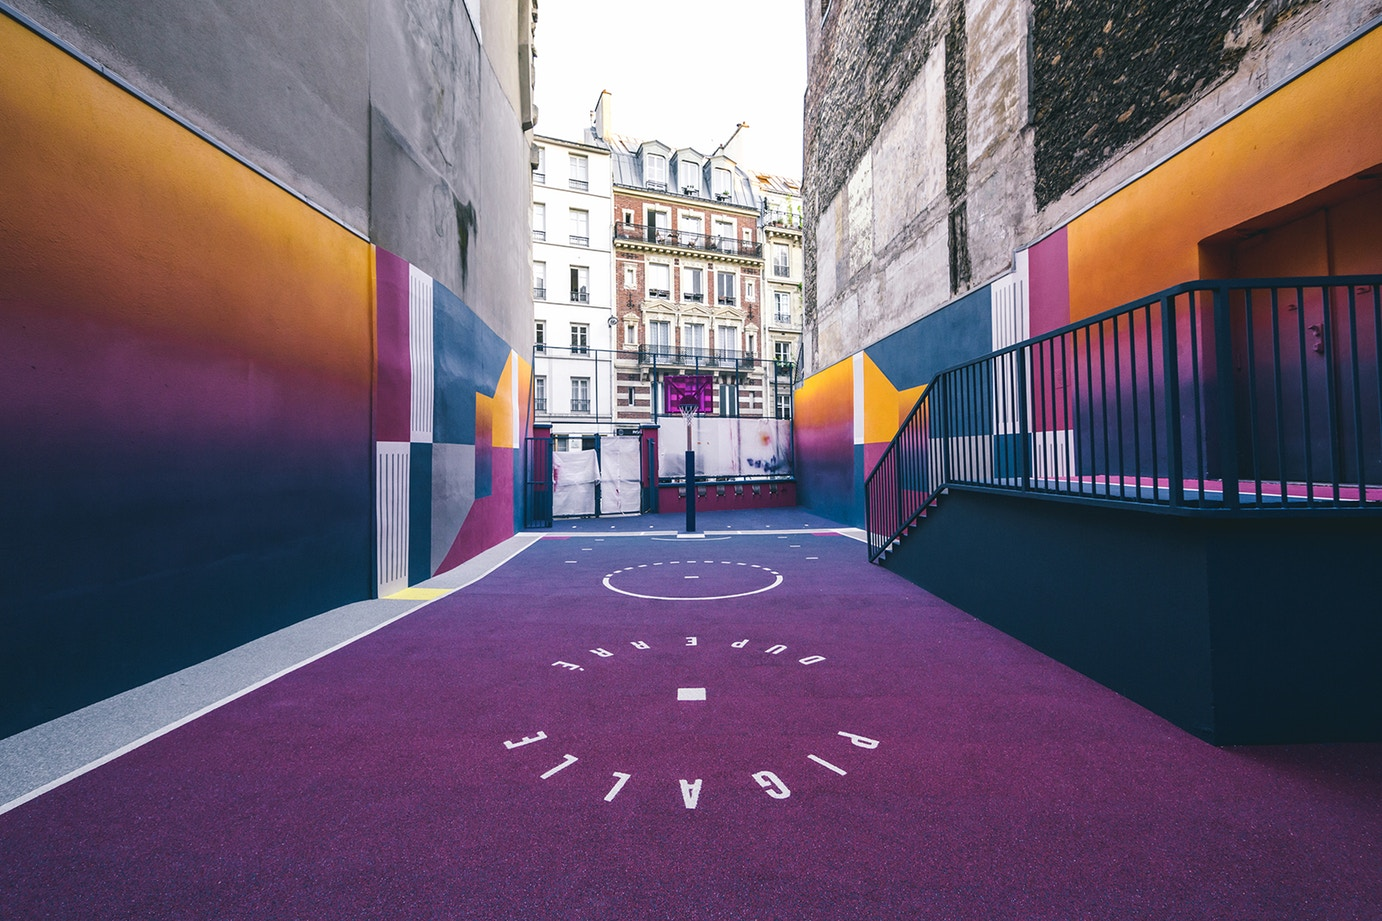 http-%2F%2Fhypebeast.com%2Fimage%2F2017%2F06%2Fpigalle-latest-basketball-court-design-eclectic-colorful-navy-purple-yellow-7.jpg